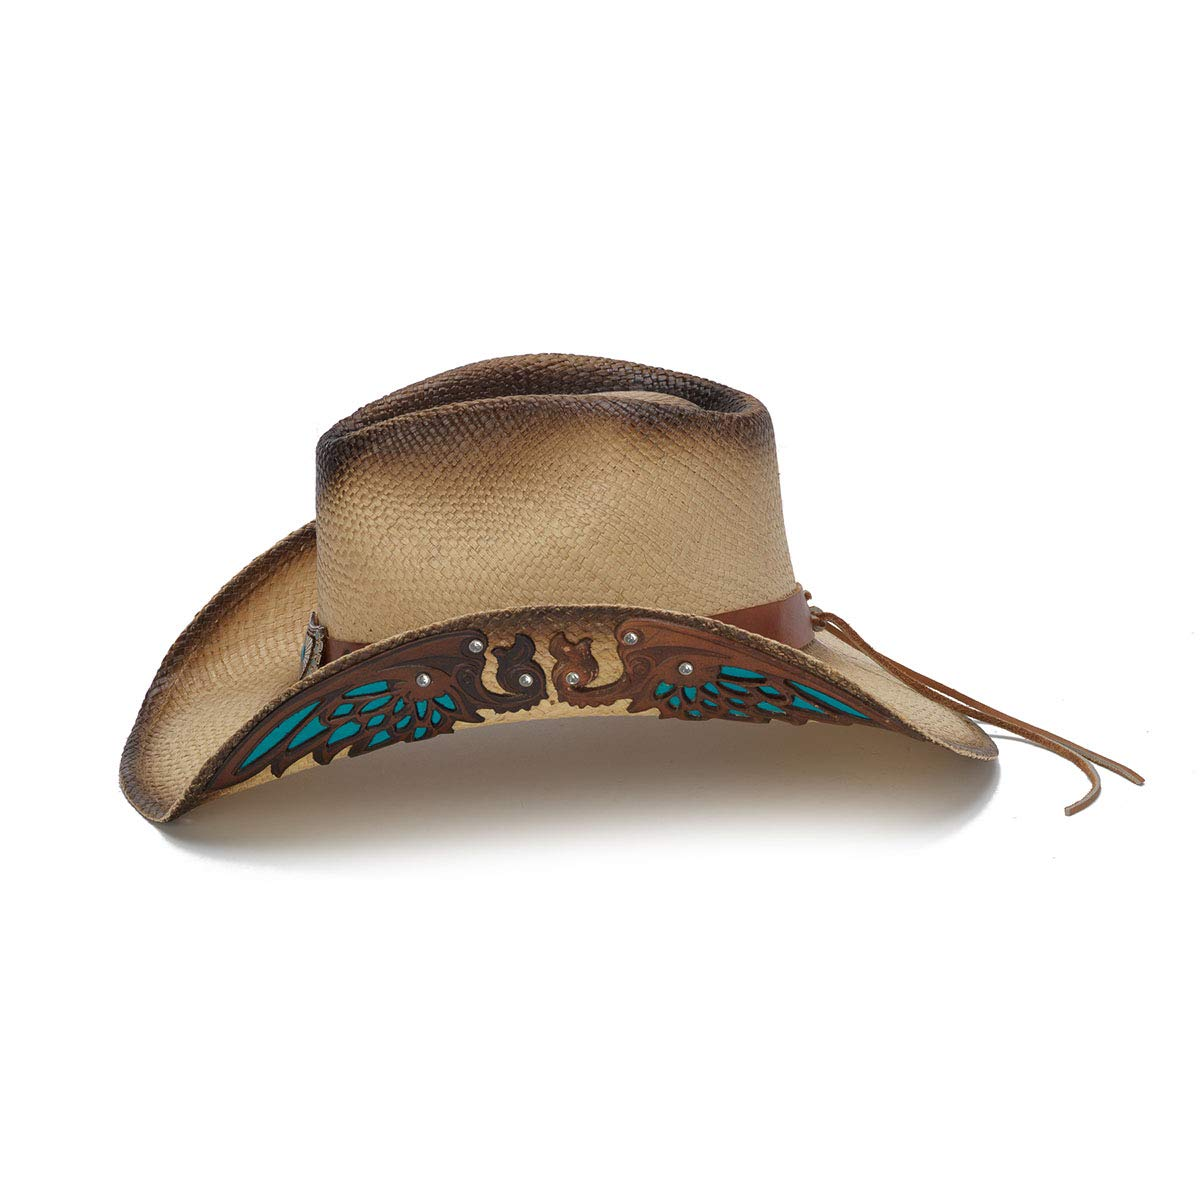 Stampede Hats Women's Concho Turquoise Wings Rhinestone Western Hat XS Tea Stain by Stampede Hats (Image #3)